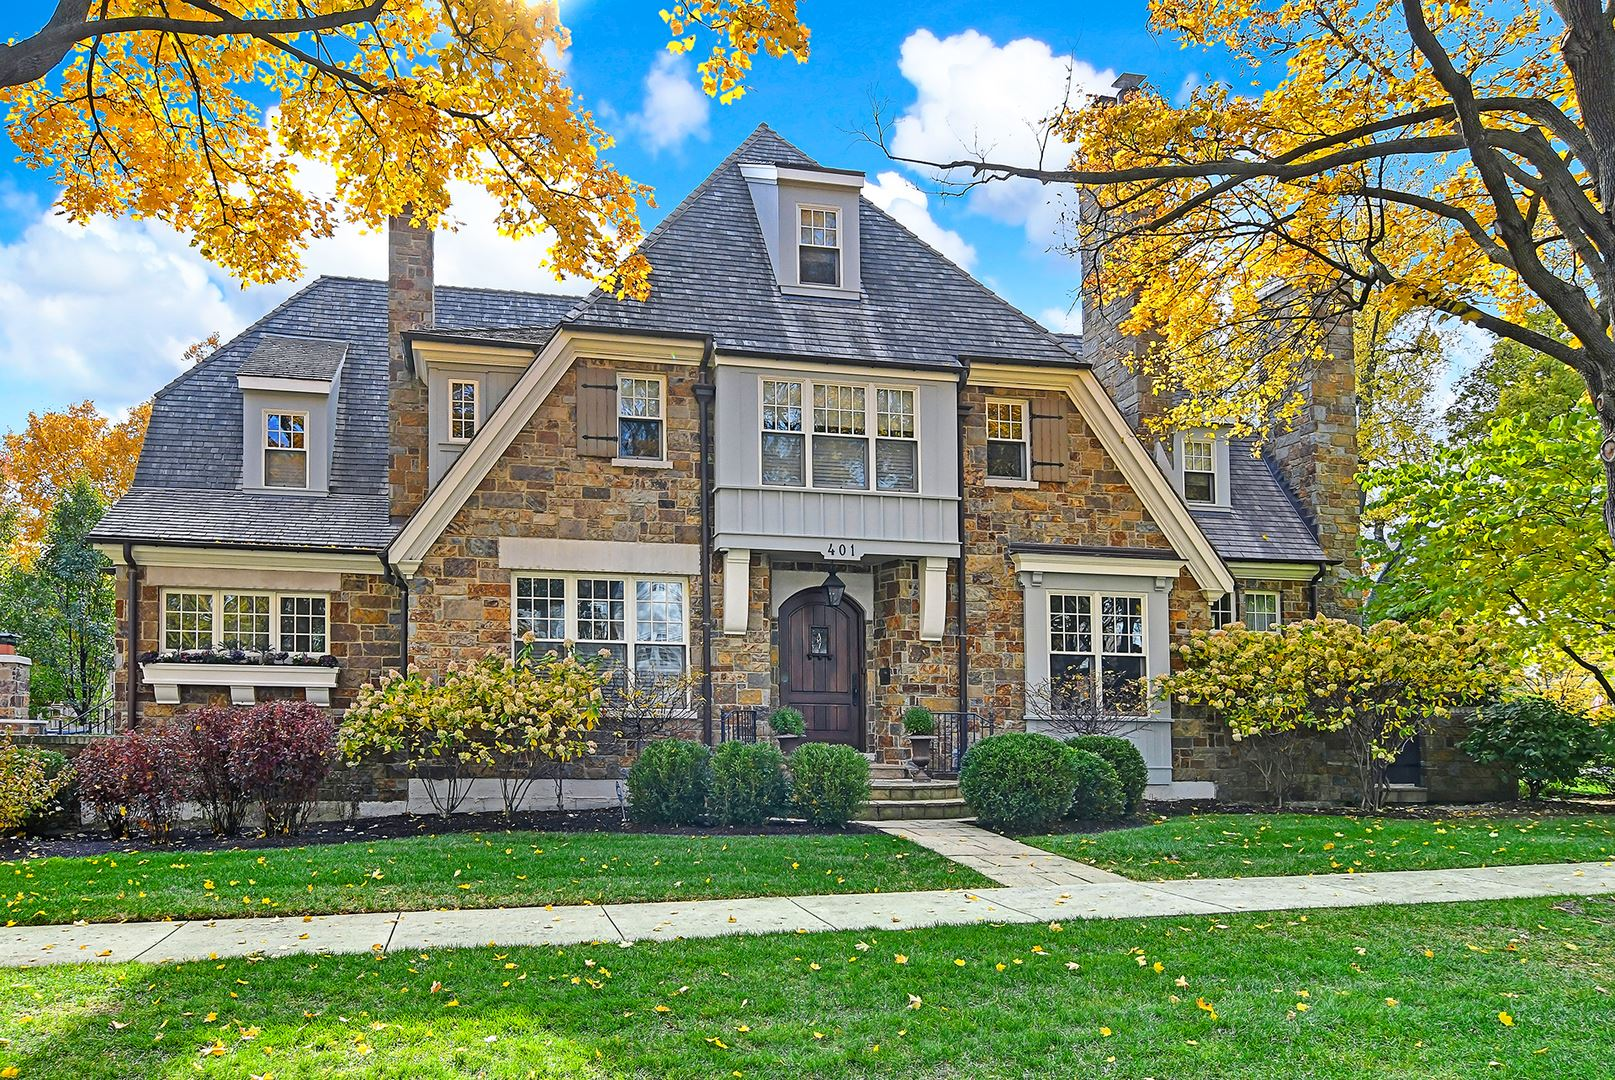 401 S LINCOLN Street, Hinsdale, IL 60521 - #: 10763852